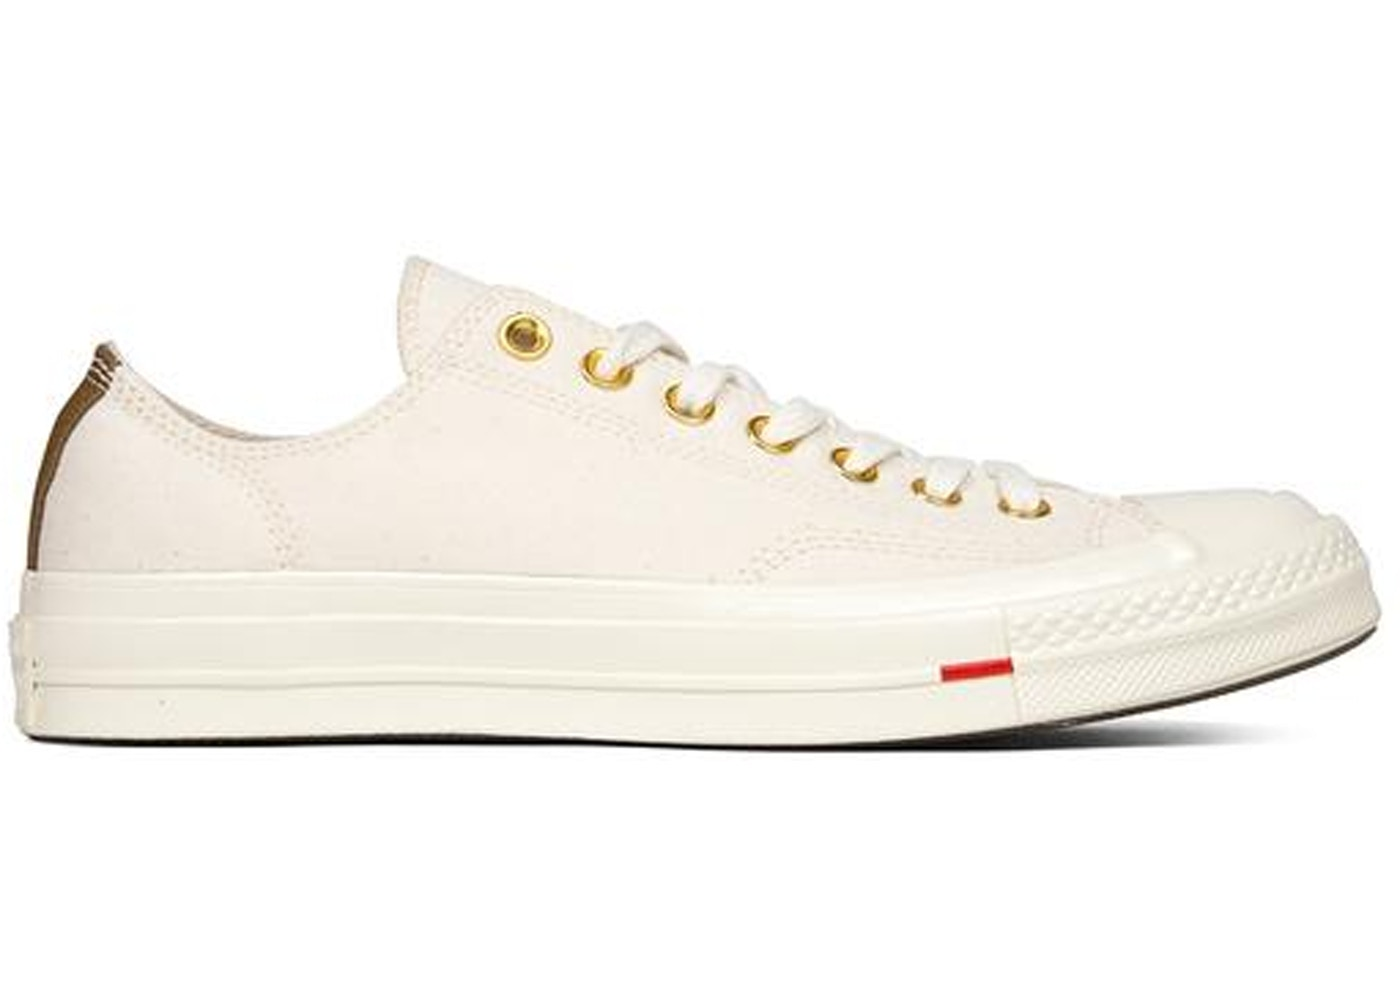 Converse Chuck Taylor All Star 70 Ox Carhartt WIP Natural